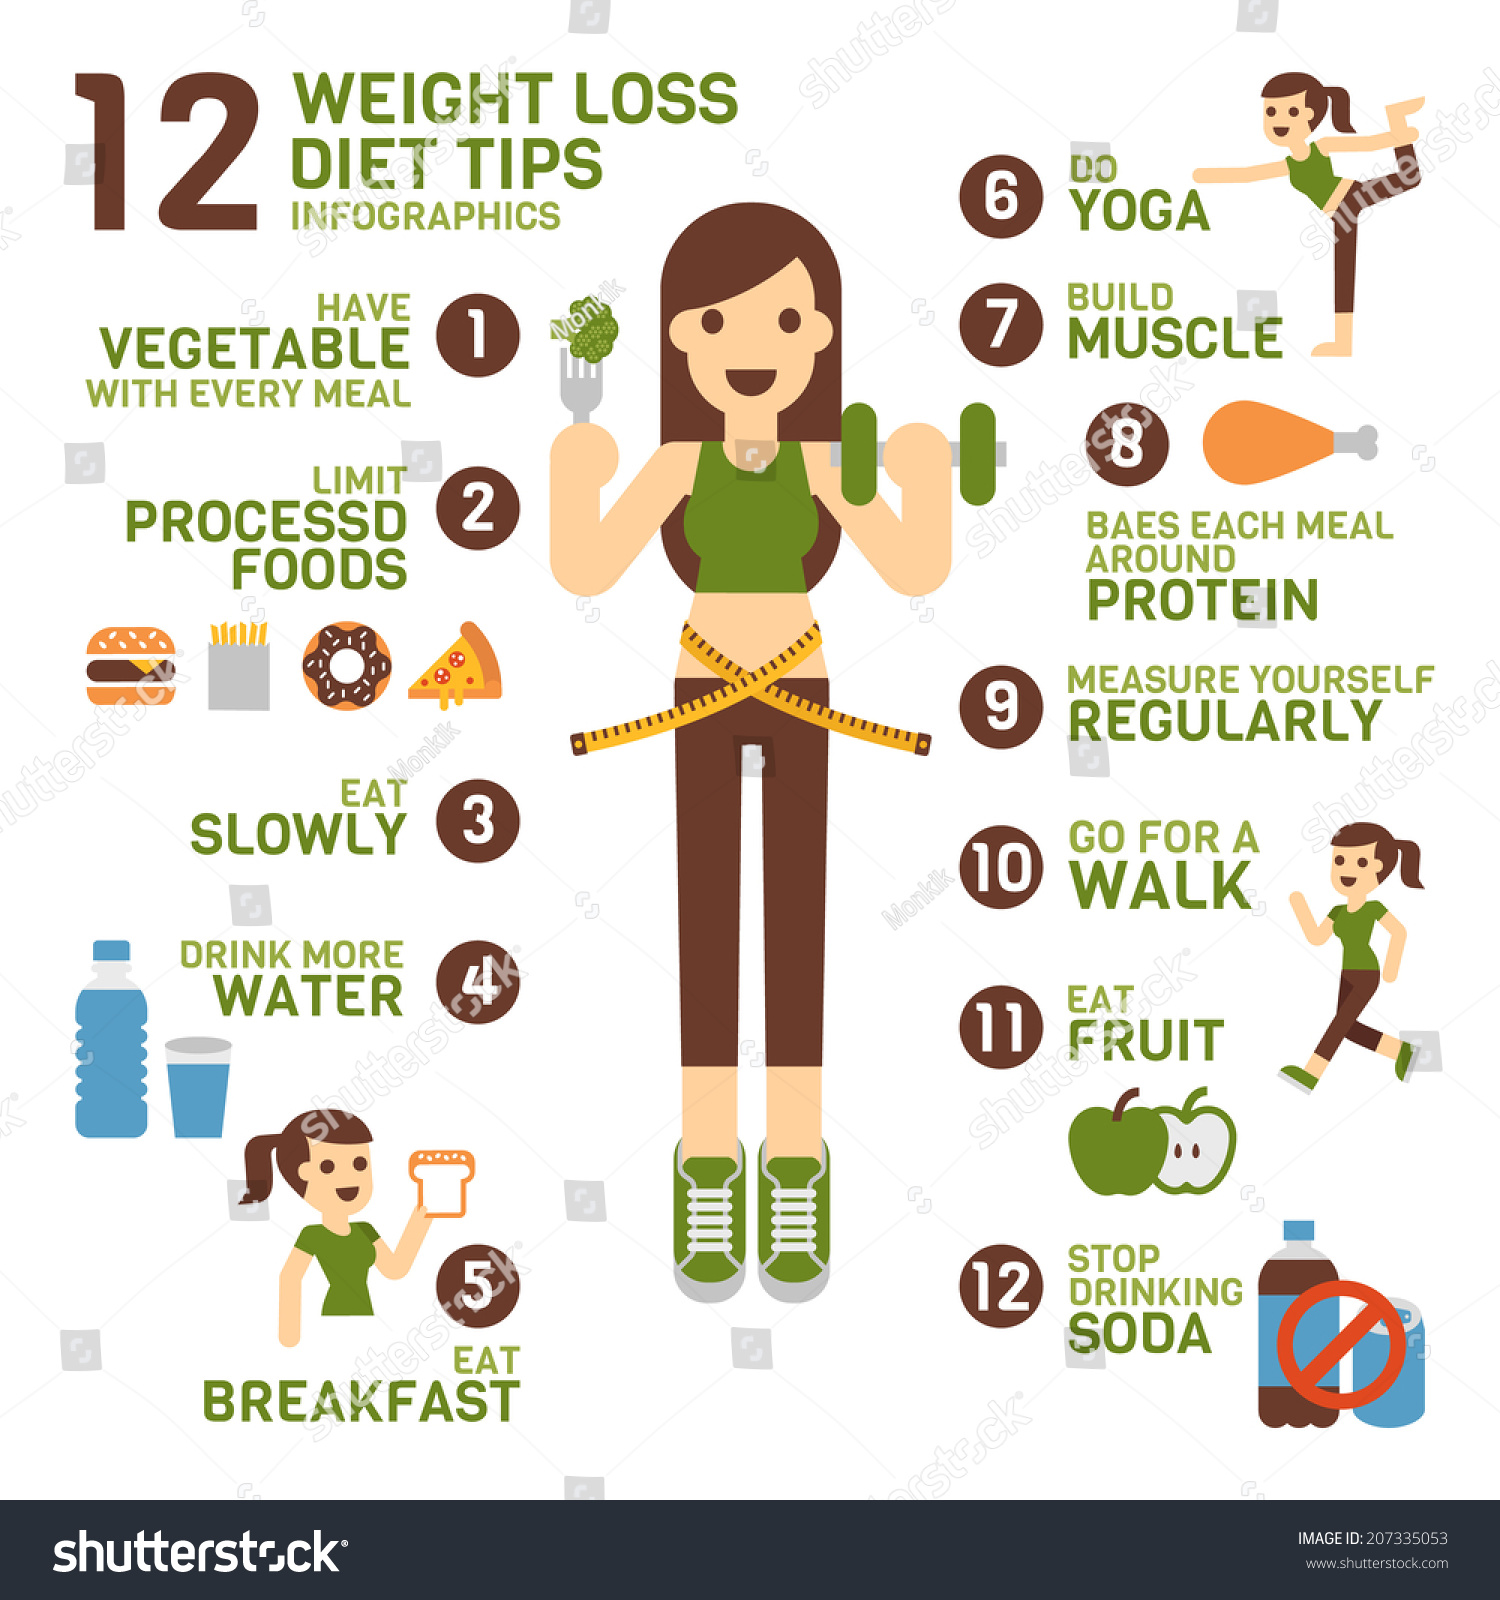 12 Weight Loss Diet Tips Infographics Stock Vector ...